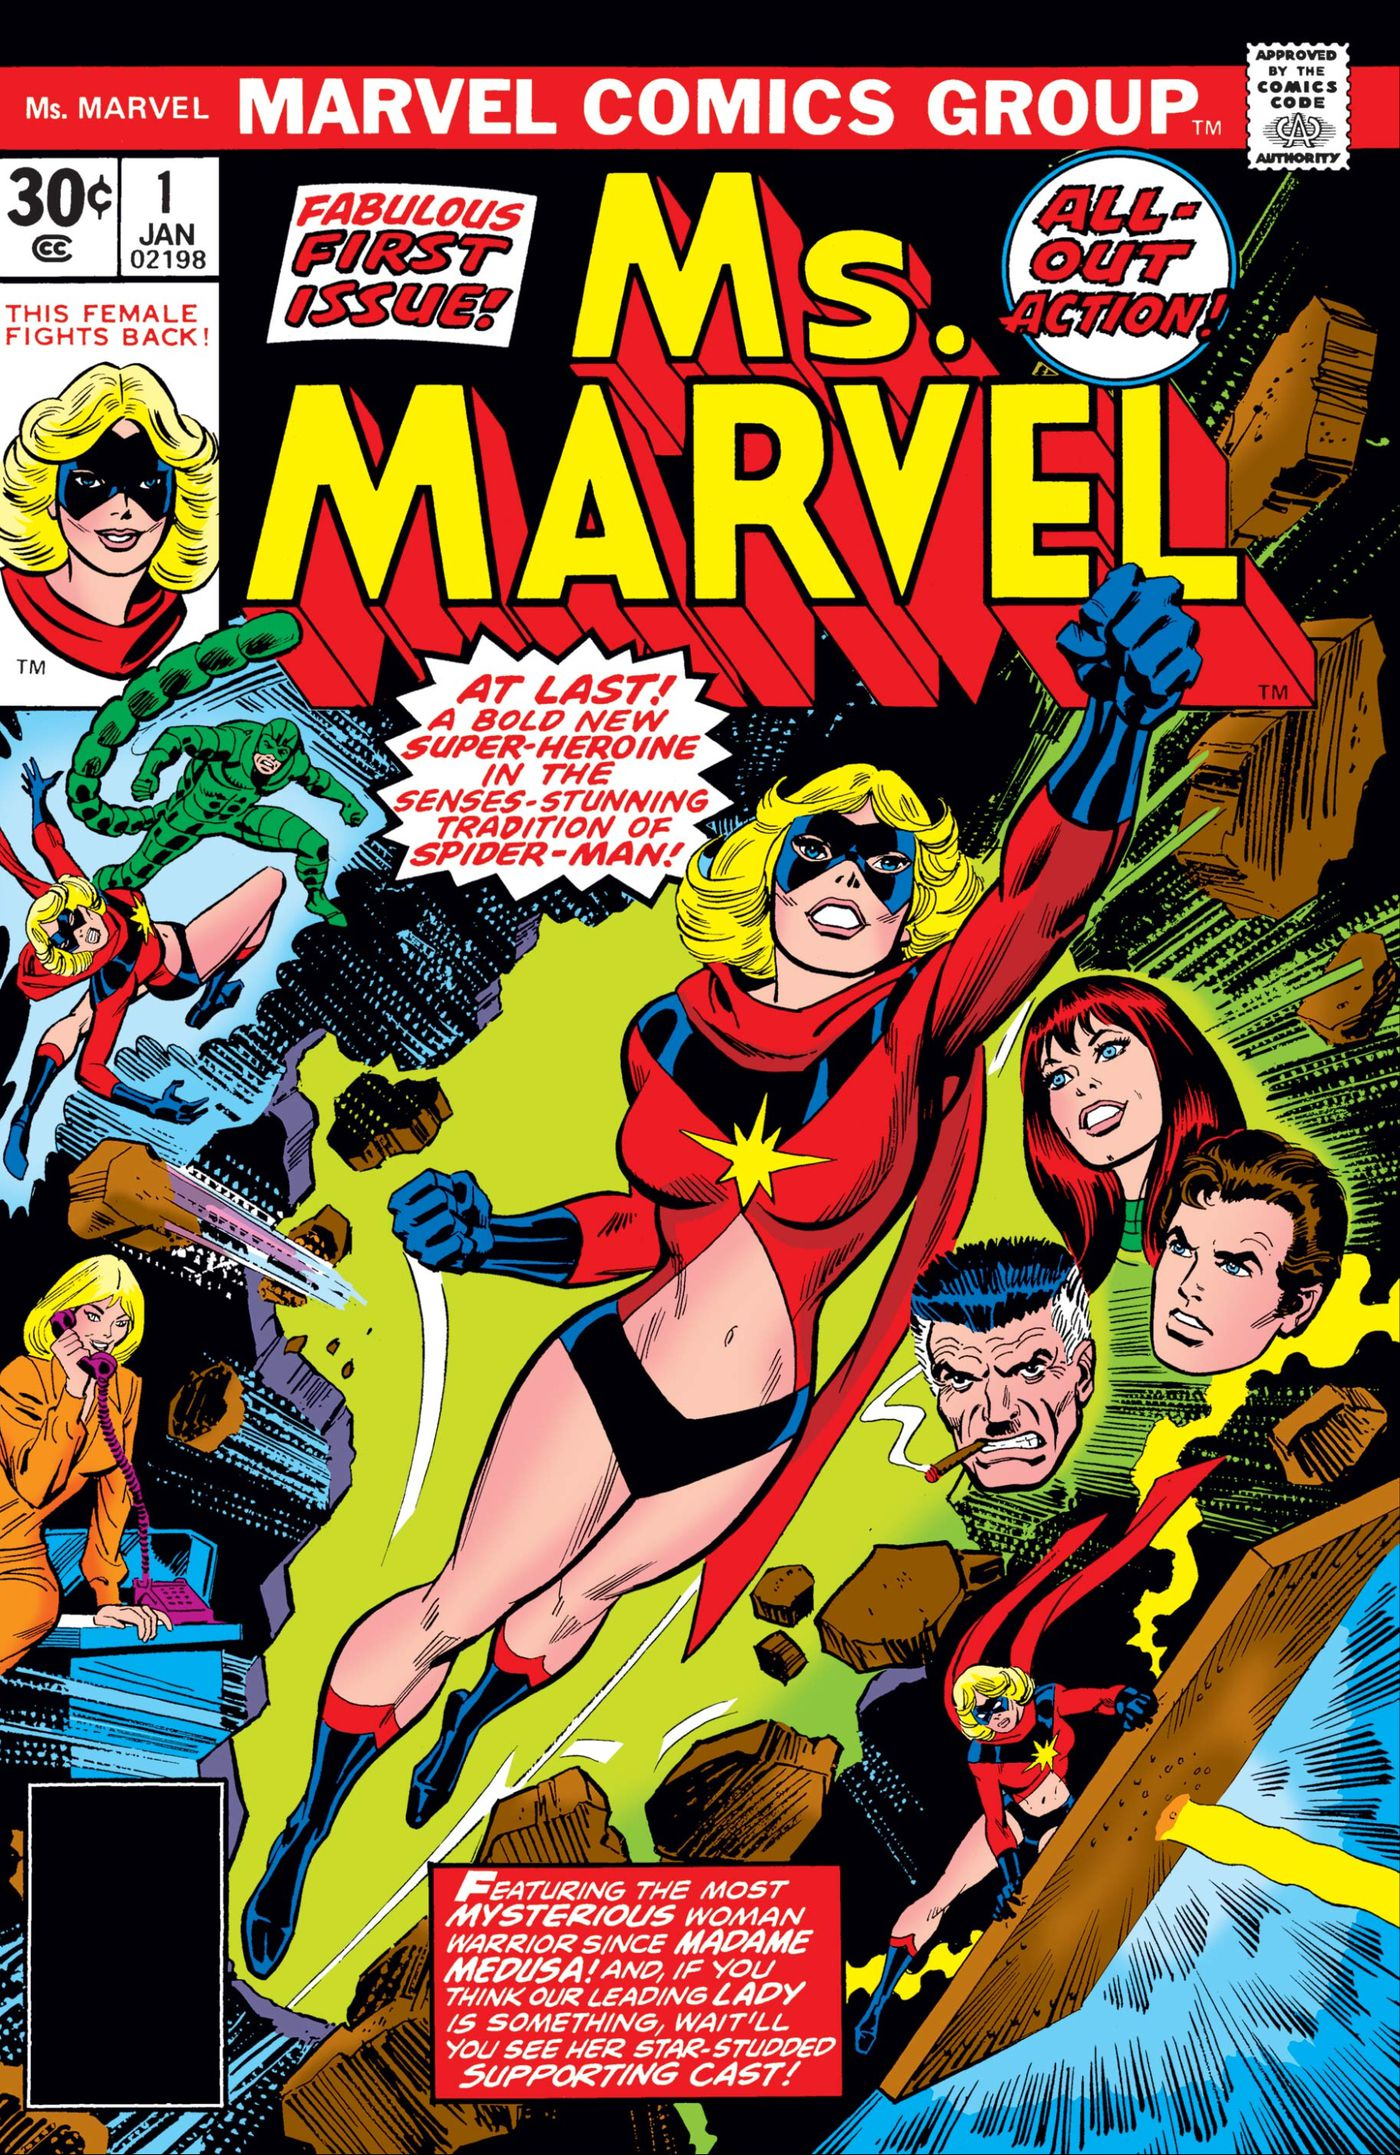 Captain Marvel's origin, powers, and comic history